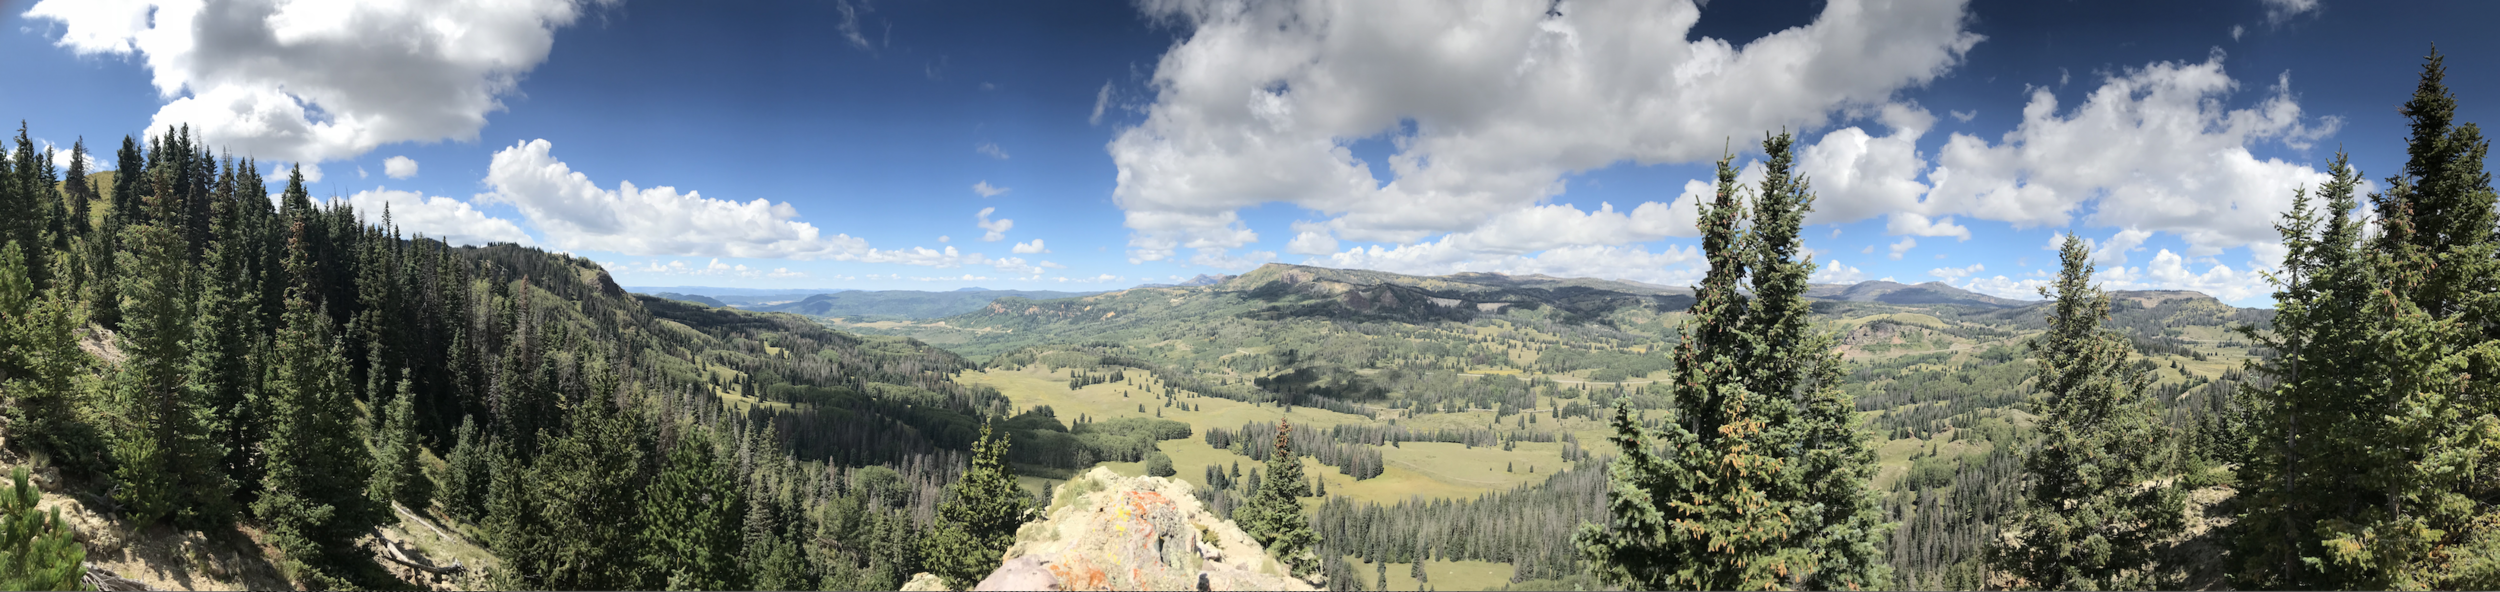 View of New Mexico from the Continental Divide Trail - Cumbres Pass South Photo by Caitlin Barbour